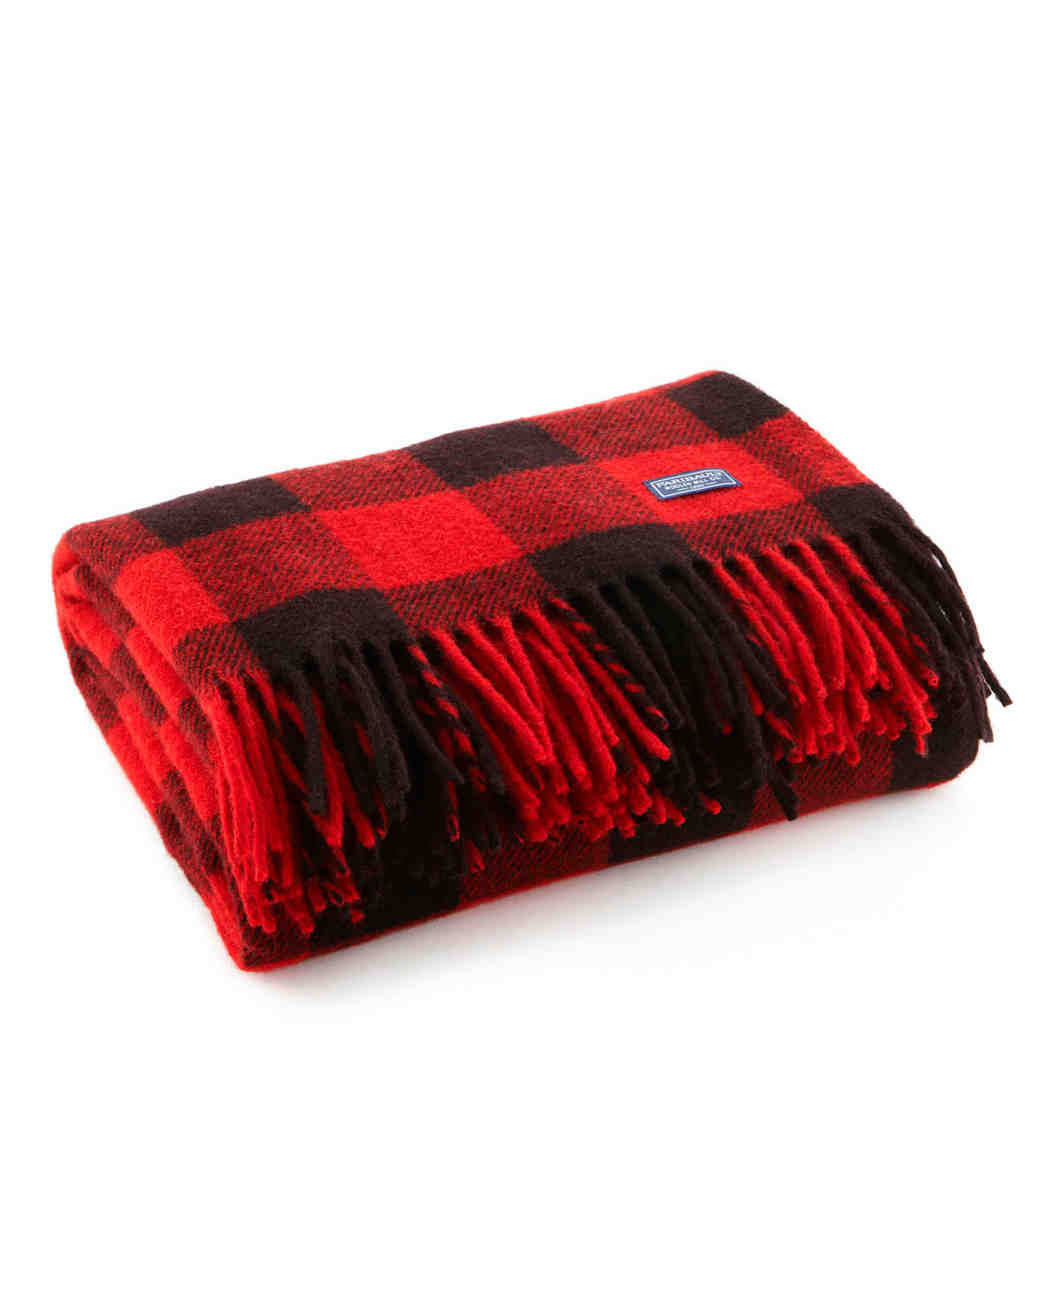 valentines-day-gift-guide-him-faribault-buffalo-plaid-throw-0115.jpg